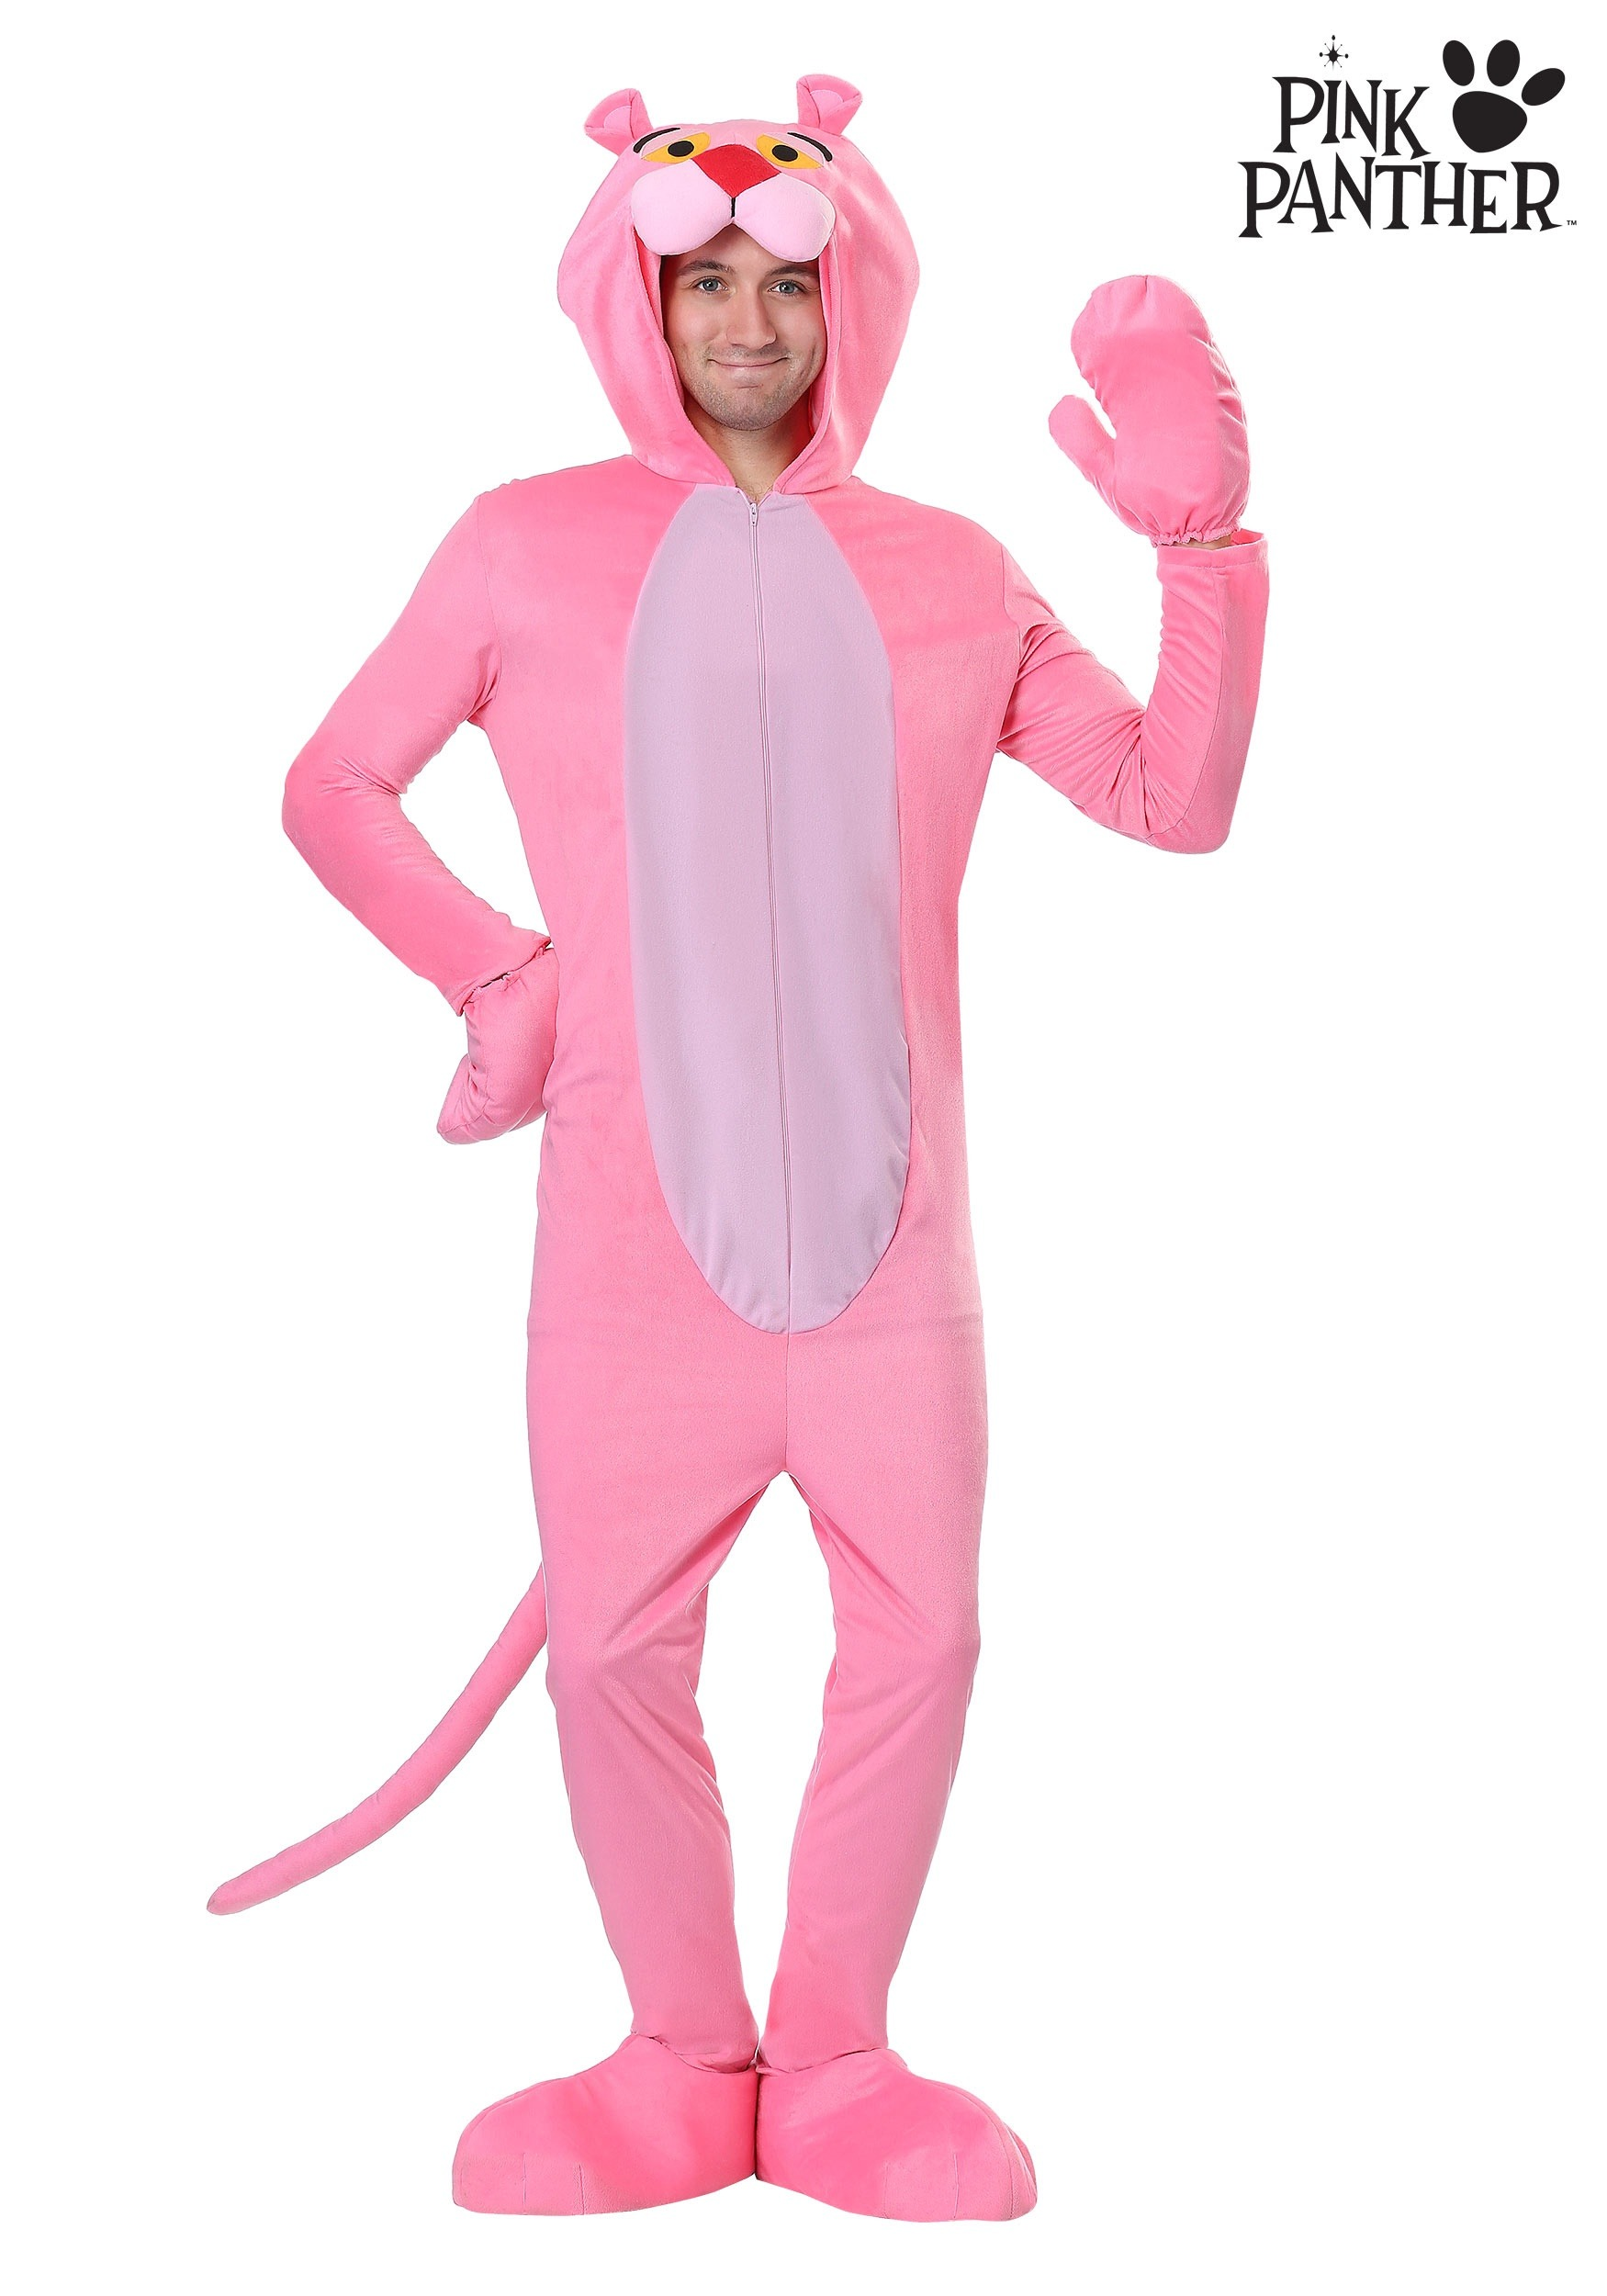 a853ddd5edae The Pink Panther Costume